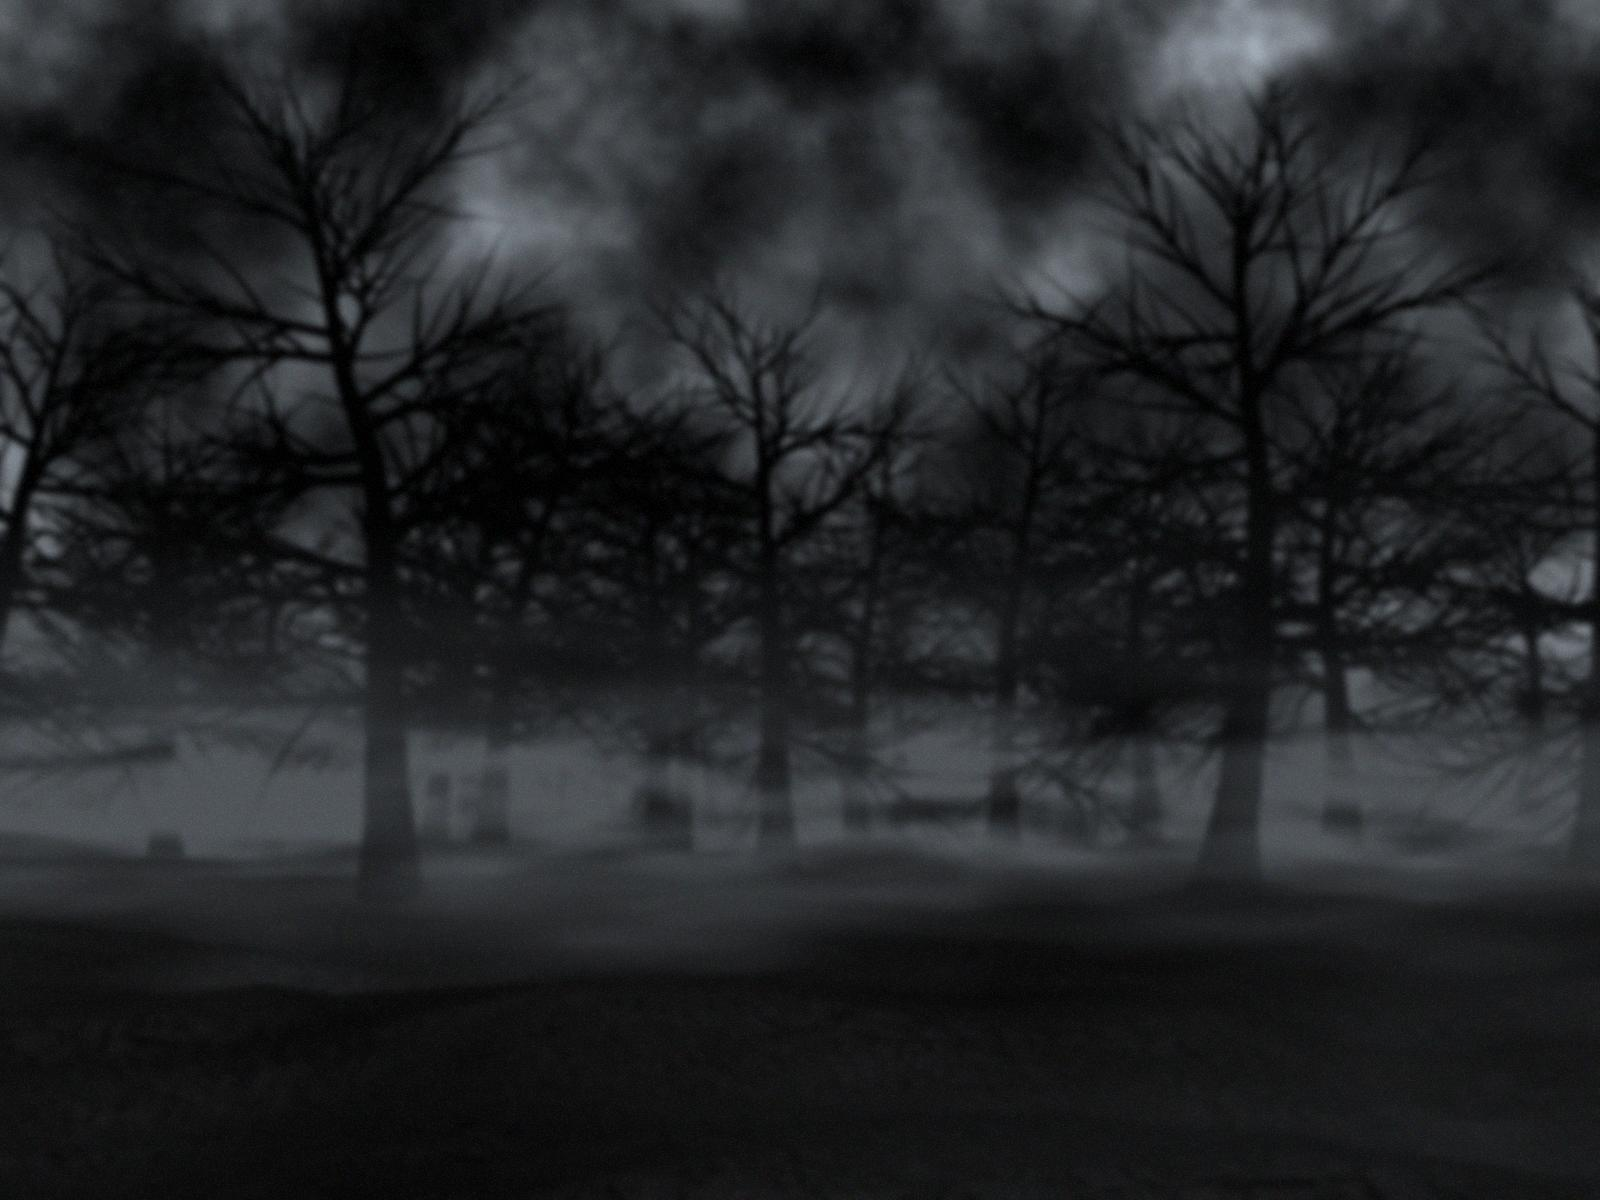 Thesideshow june 1st 2015 darkness drafting by steven minchin five 2 one - Hd wallpapers of darkness ...